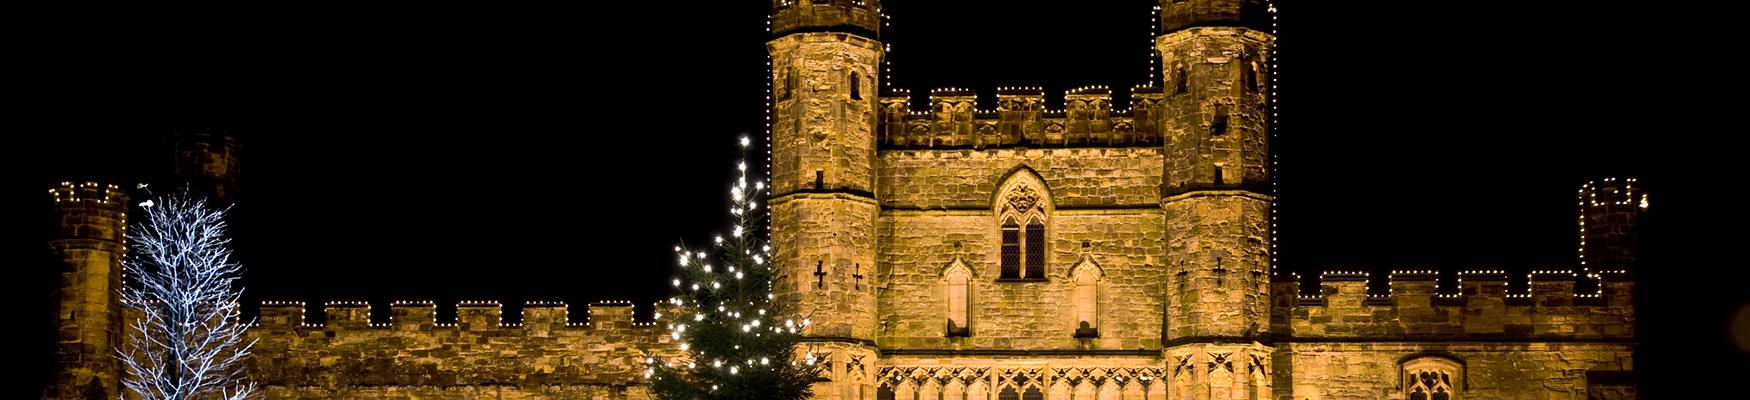 Battle Abbey gatehouse with Christmas tree